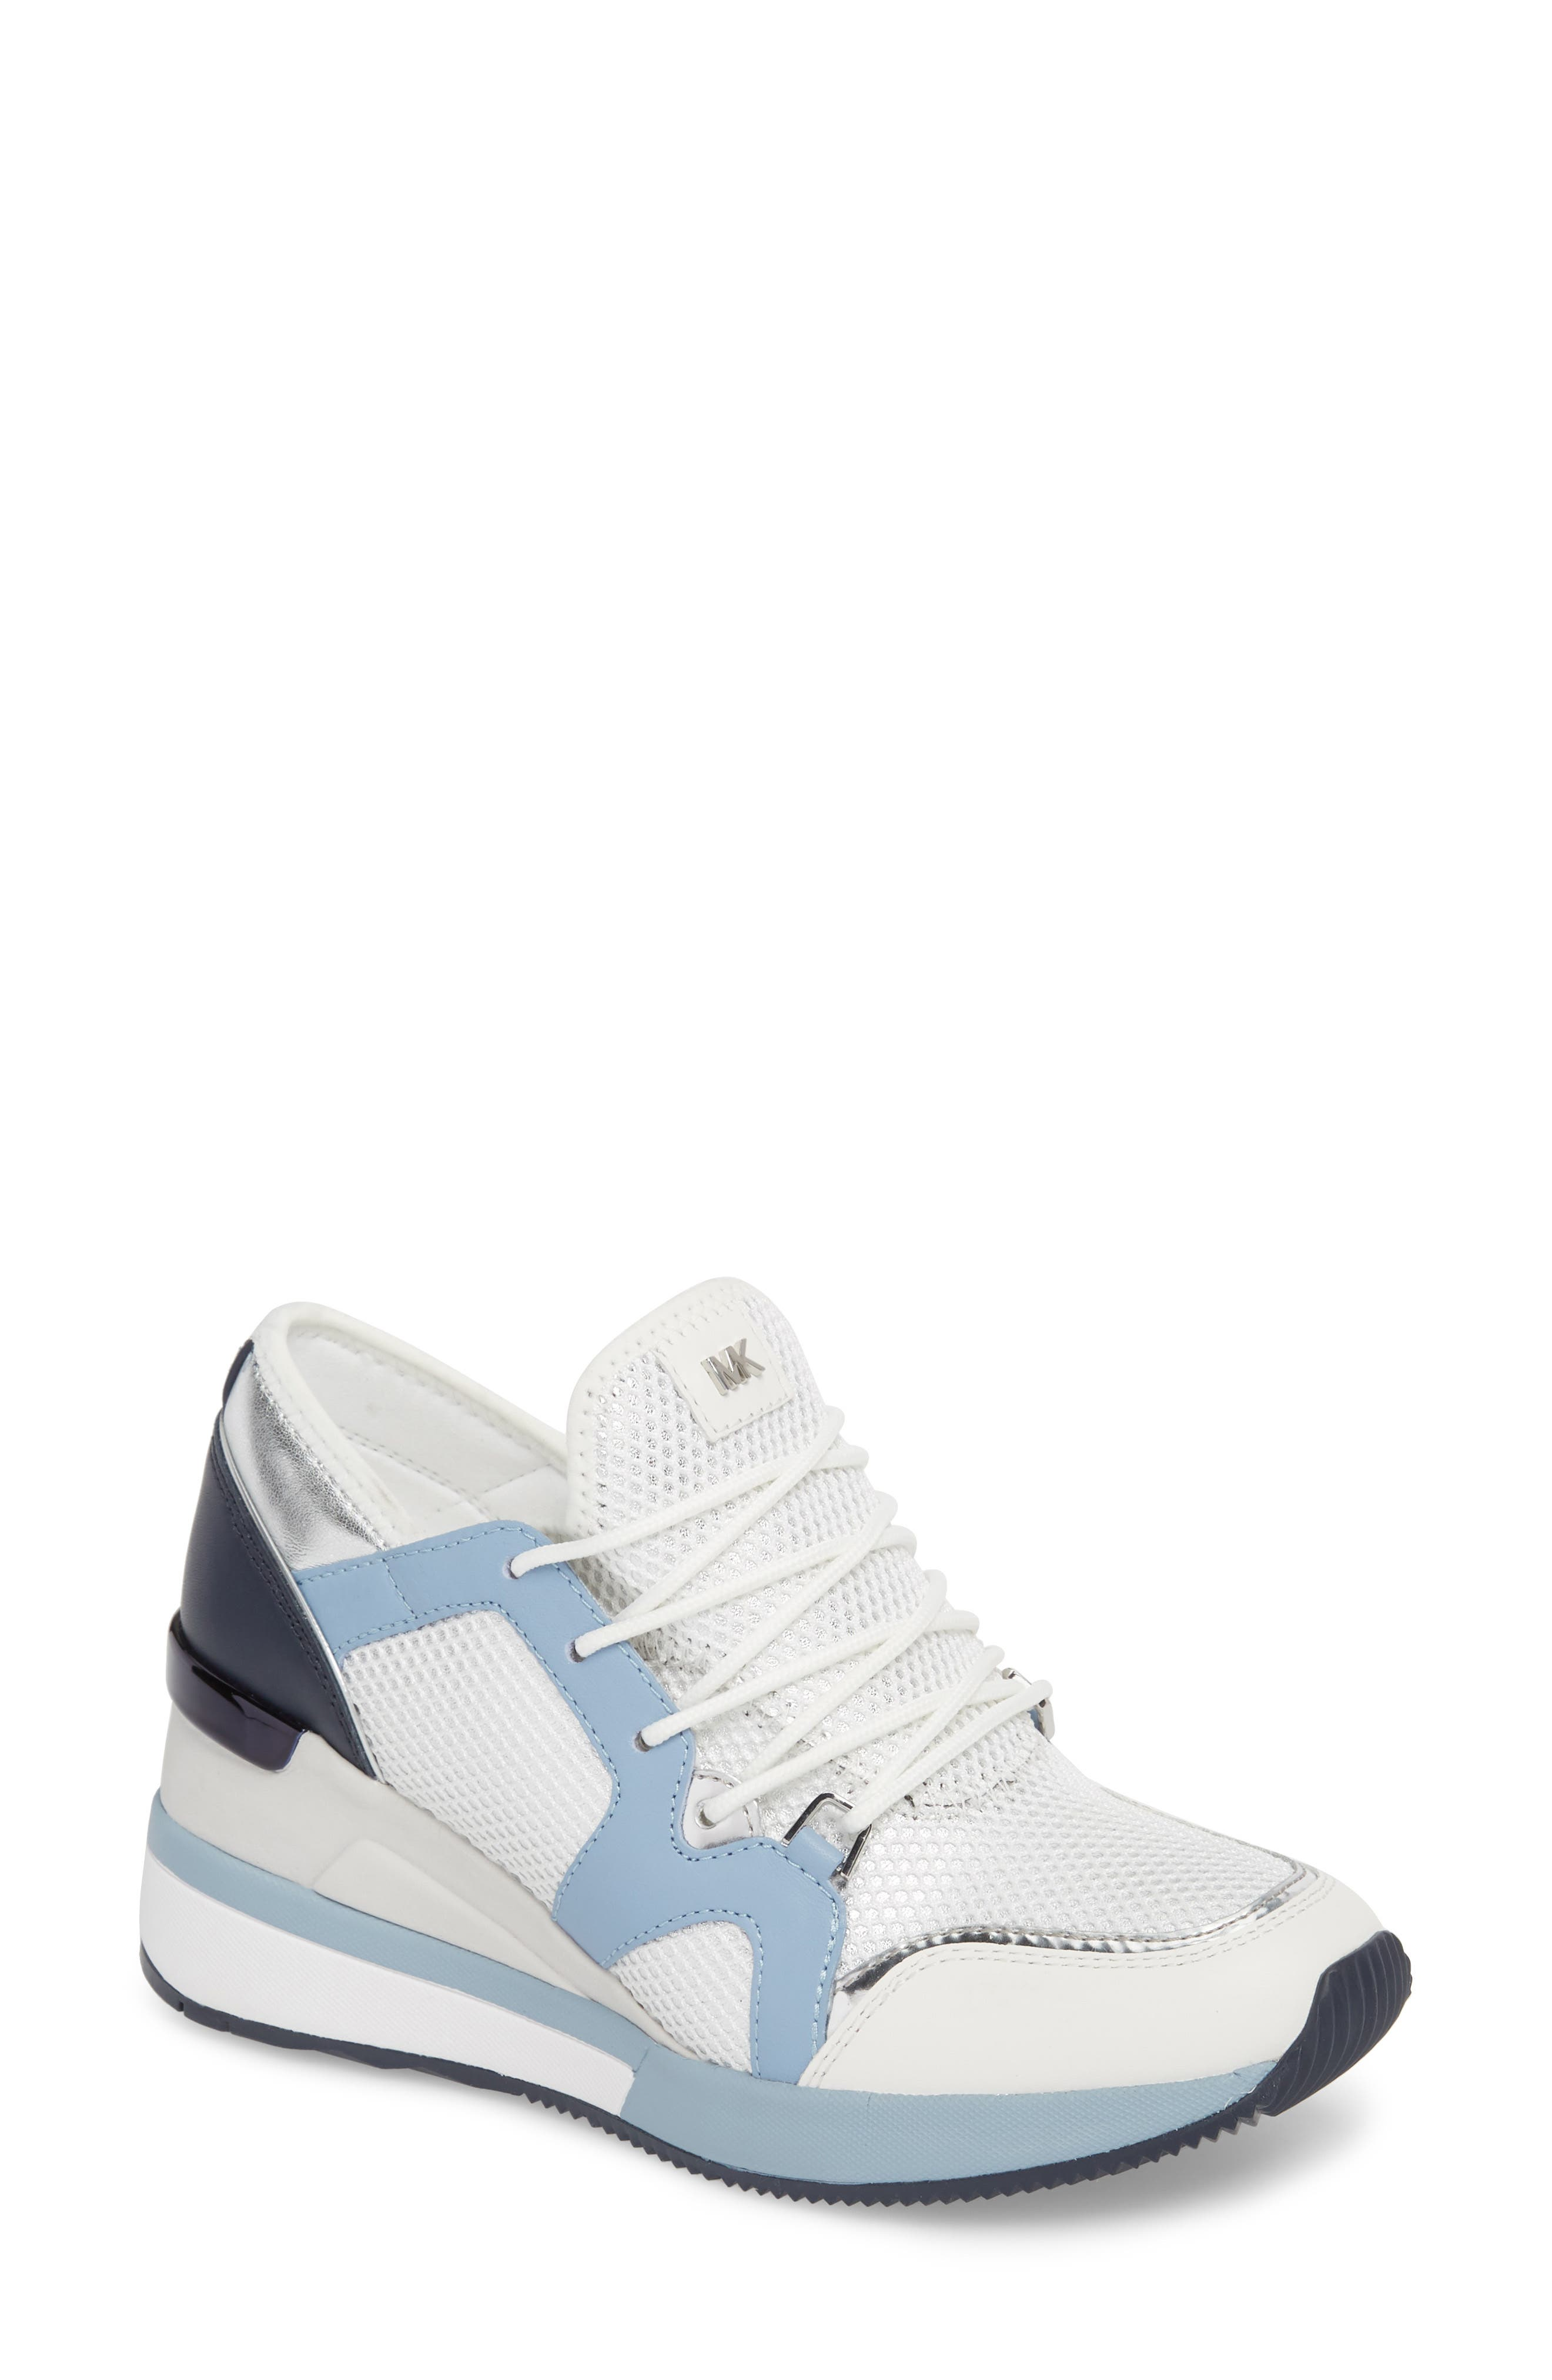 Scout Wedge Sneaker,                         Main,                         color, 429